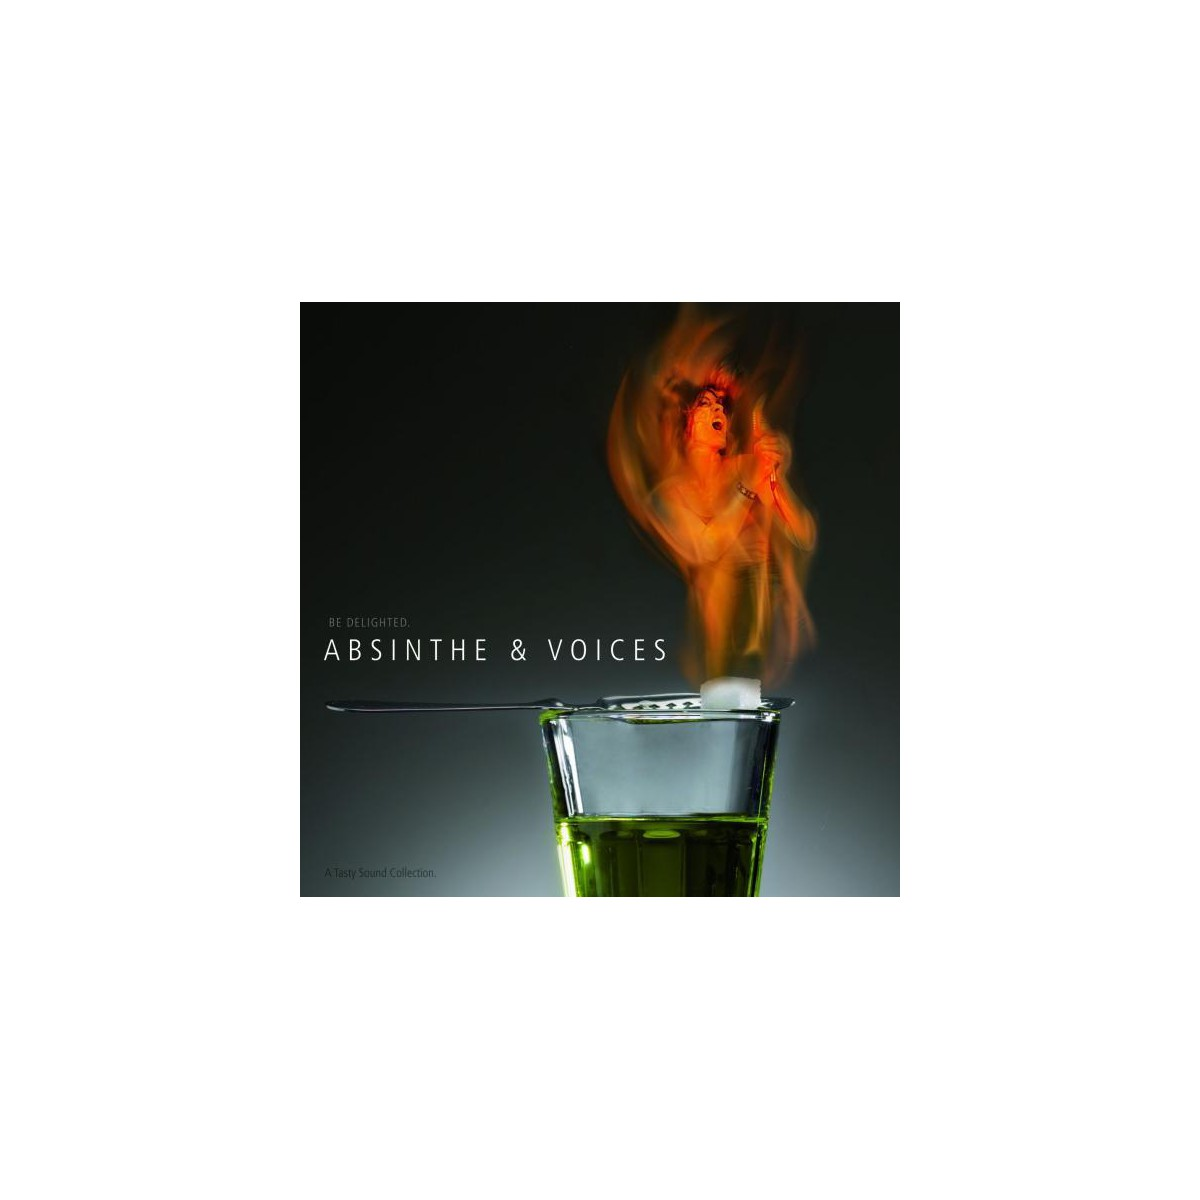 CD ABSINTHE & VOICES